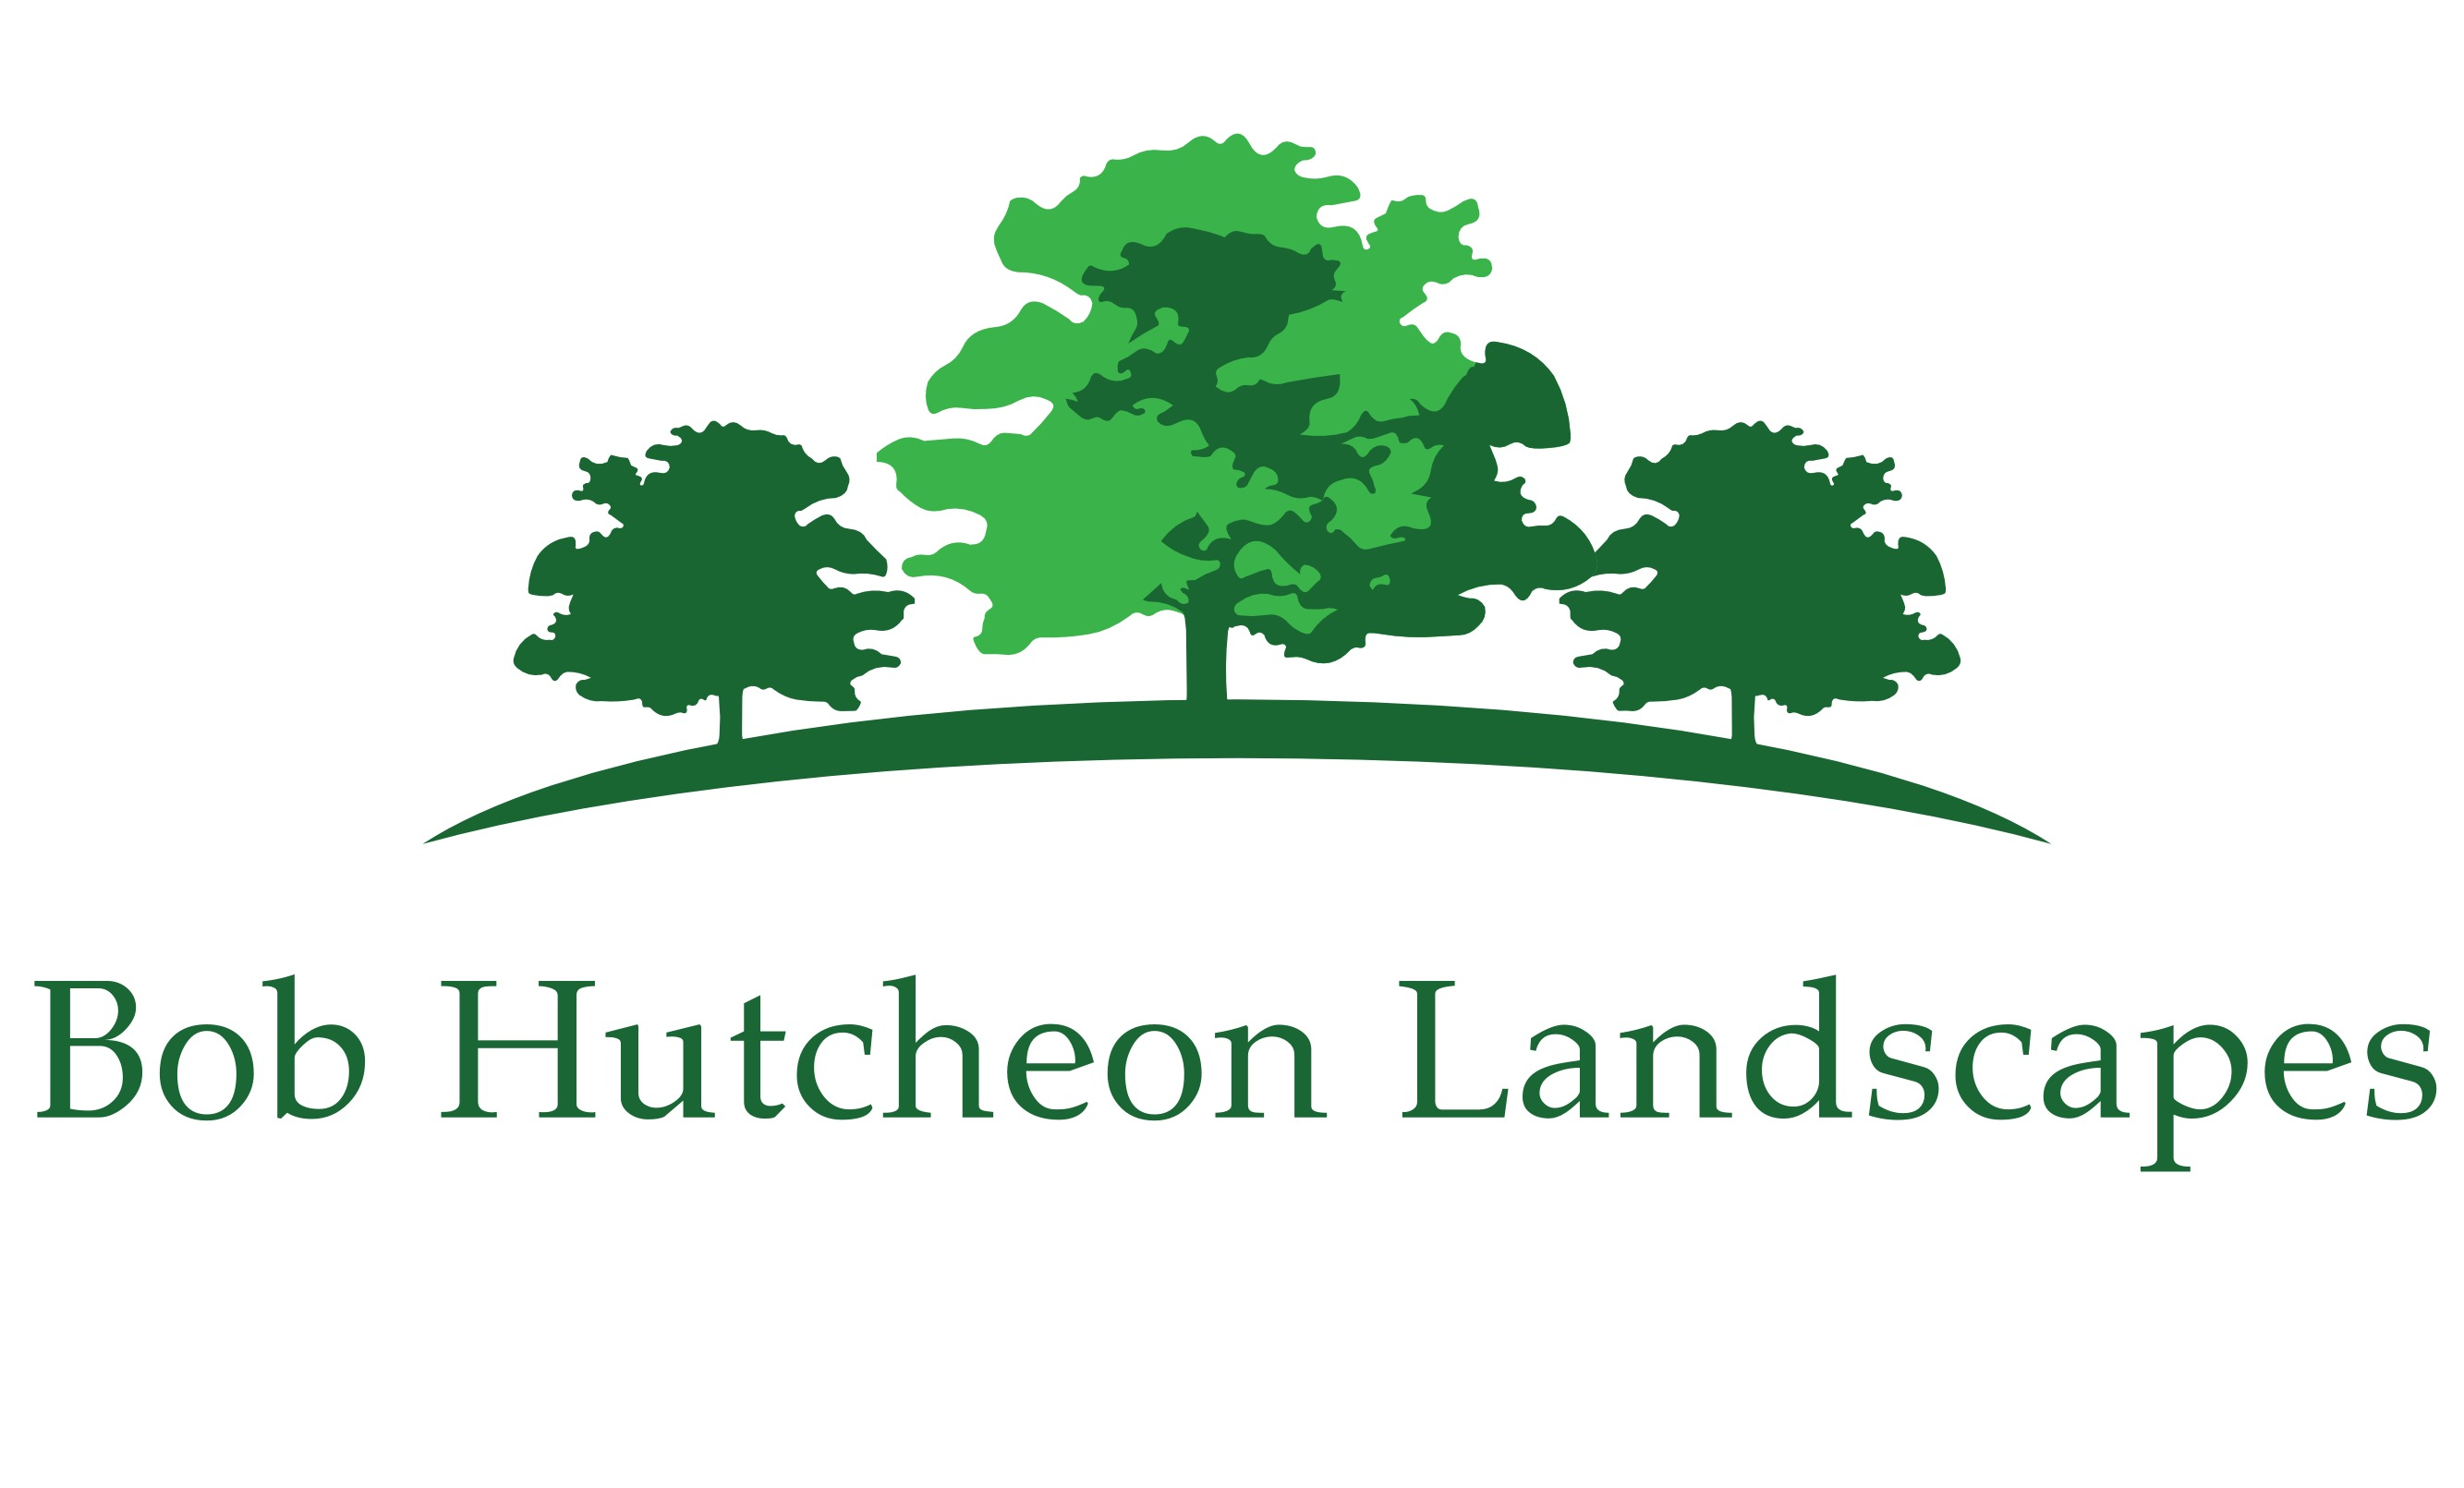 Bob Hutcheon Landscapes